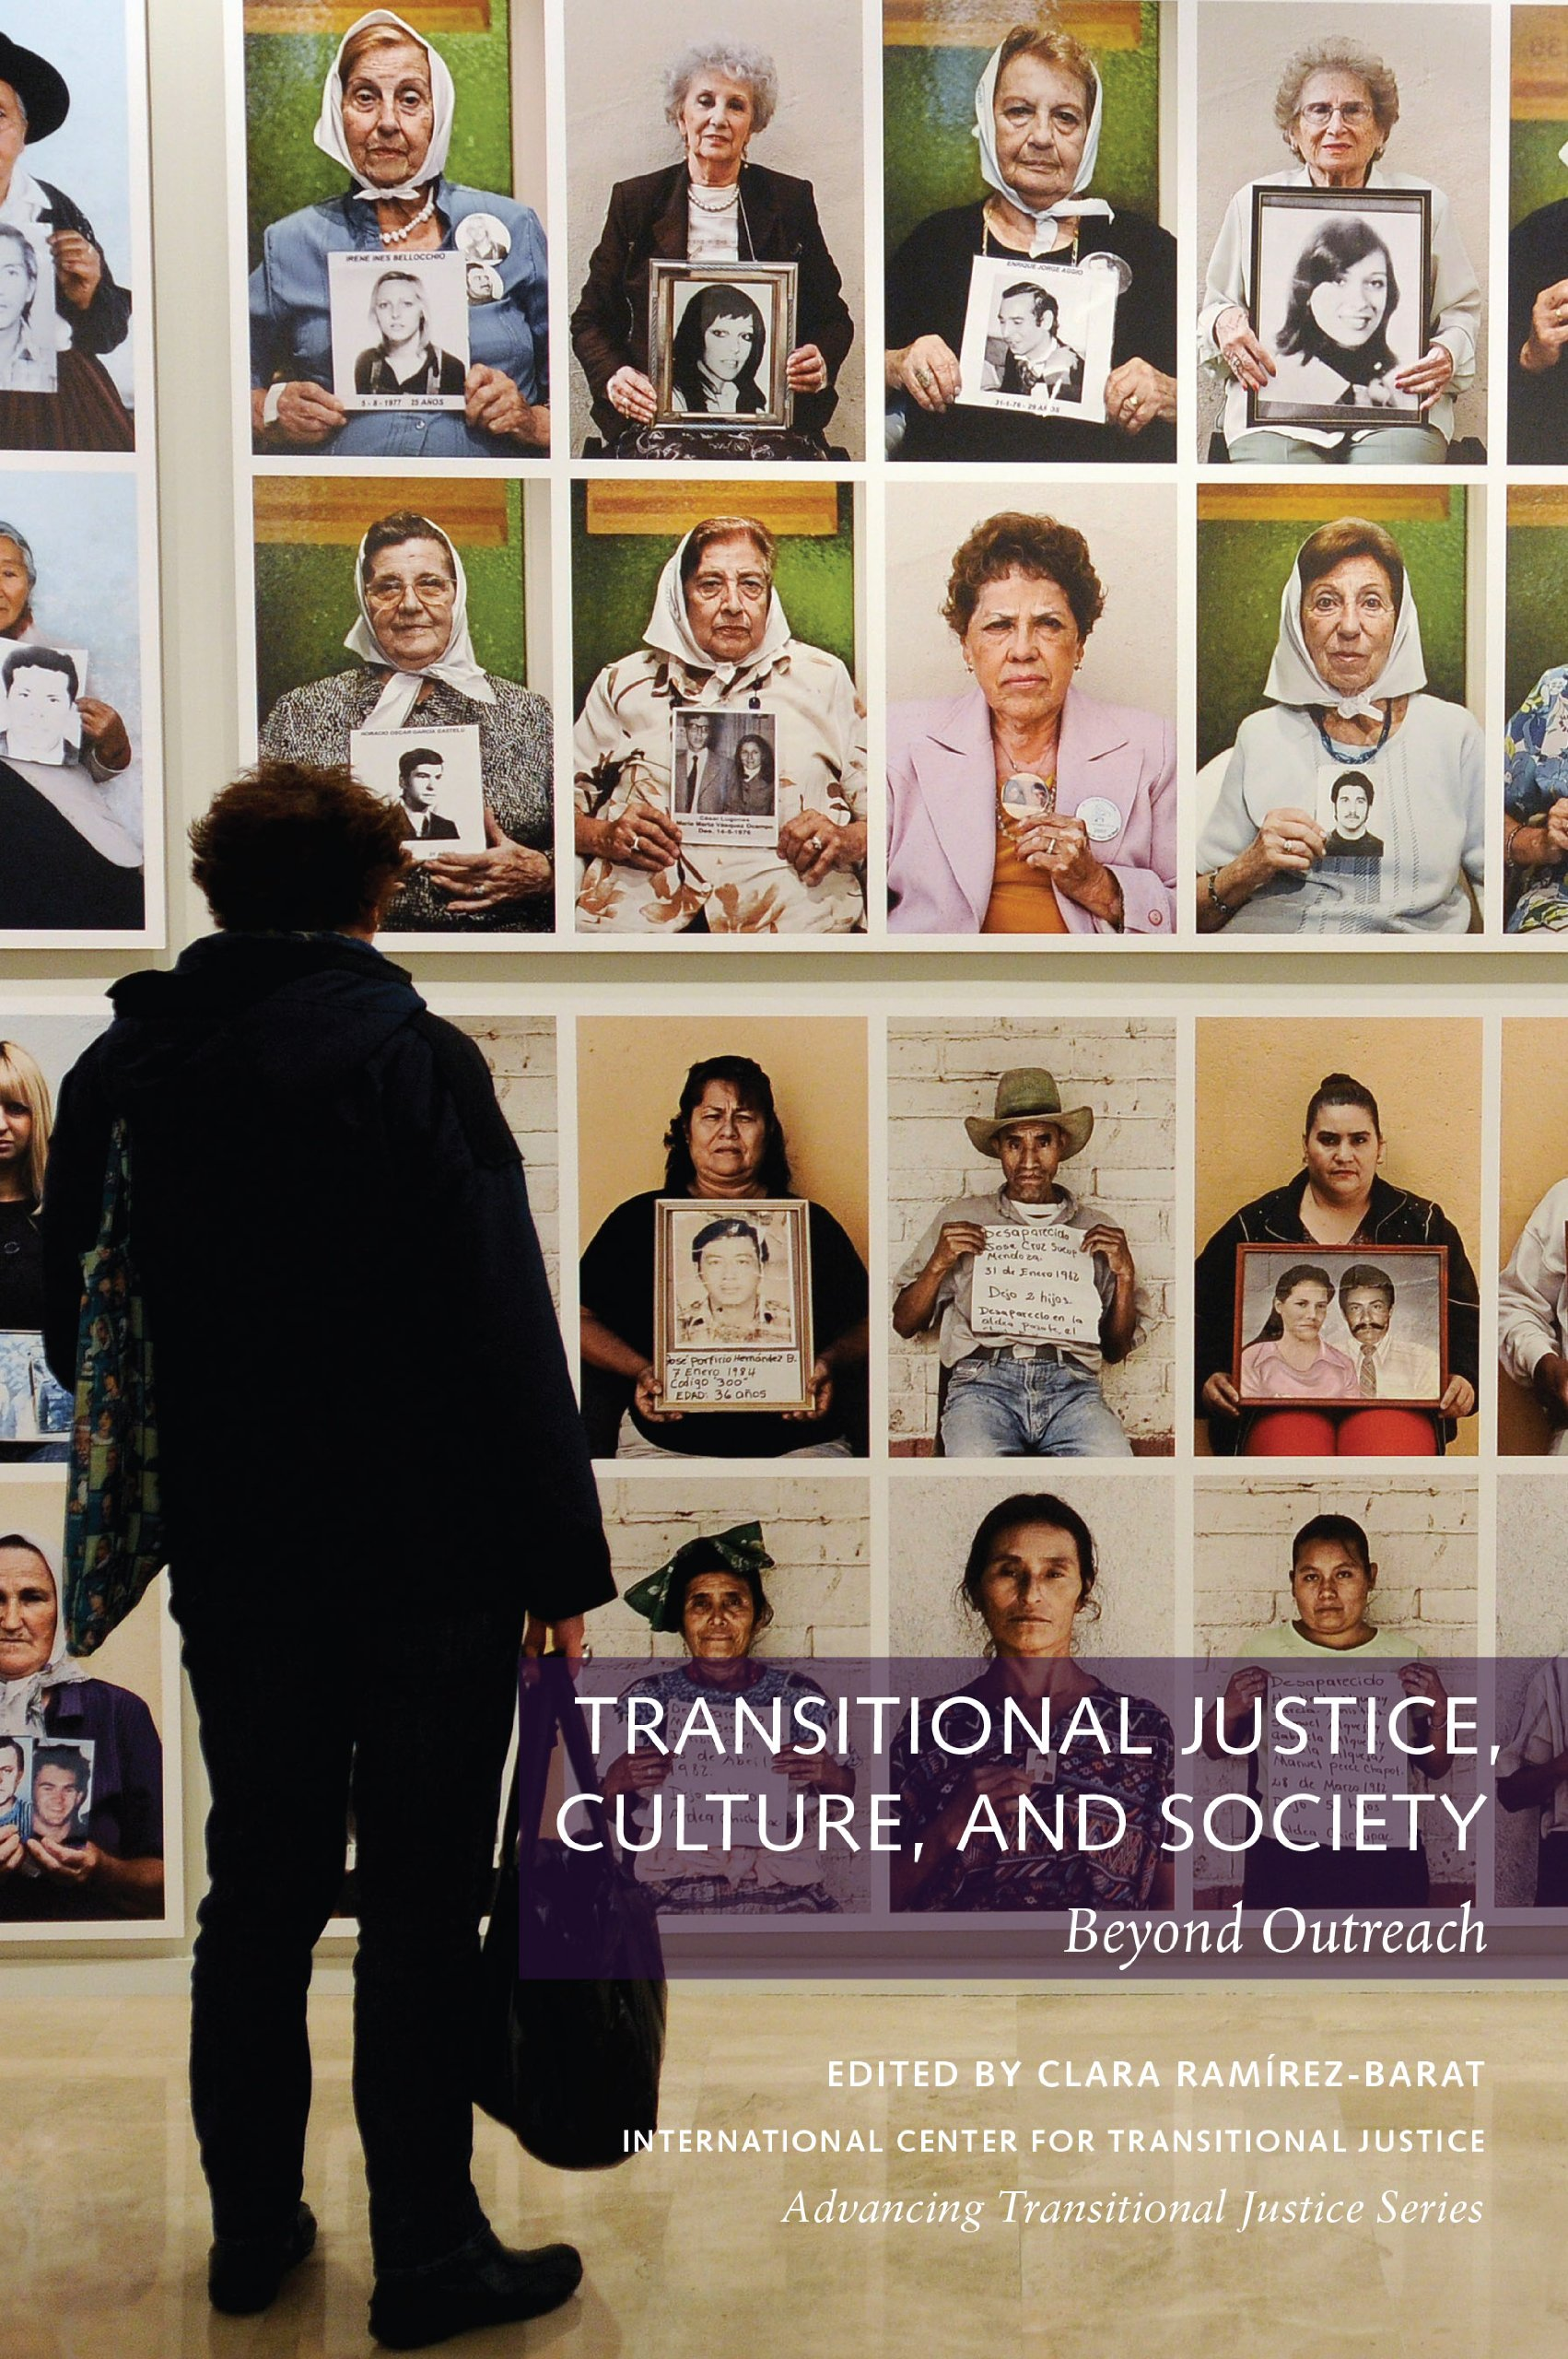 Transitional Justice, Culture, and Society: Beyond Outreach (Advancing Transitional Justice) PDF